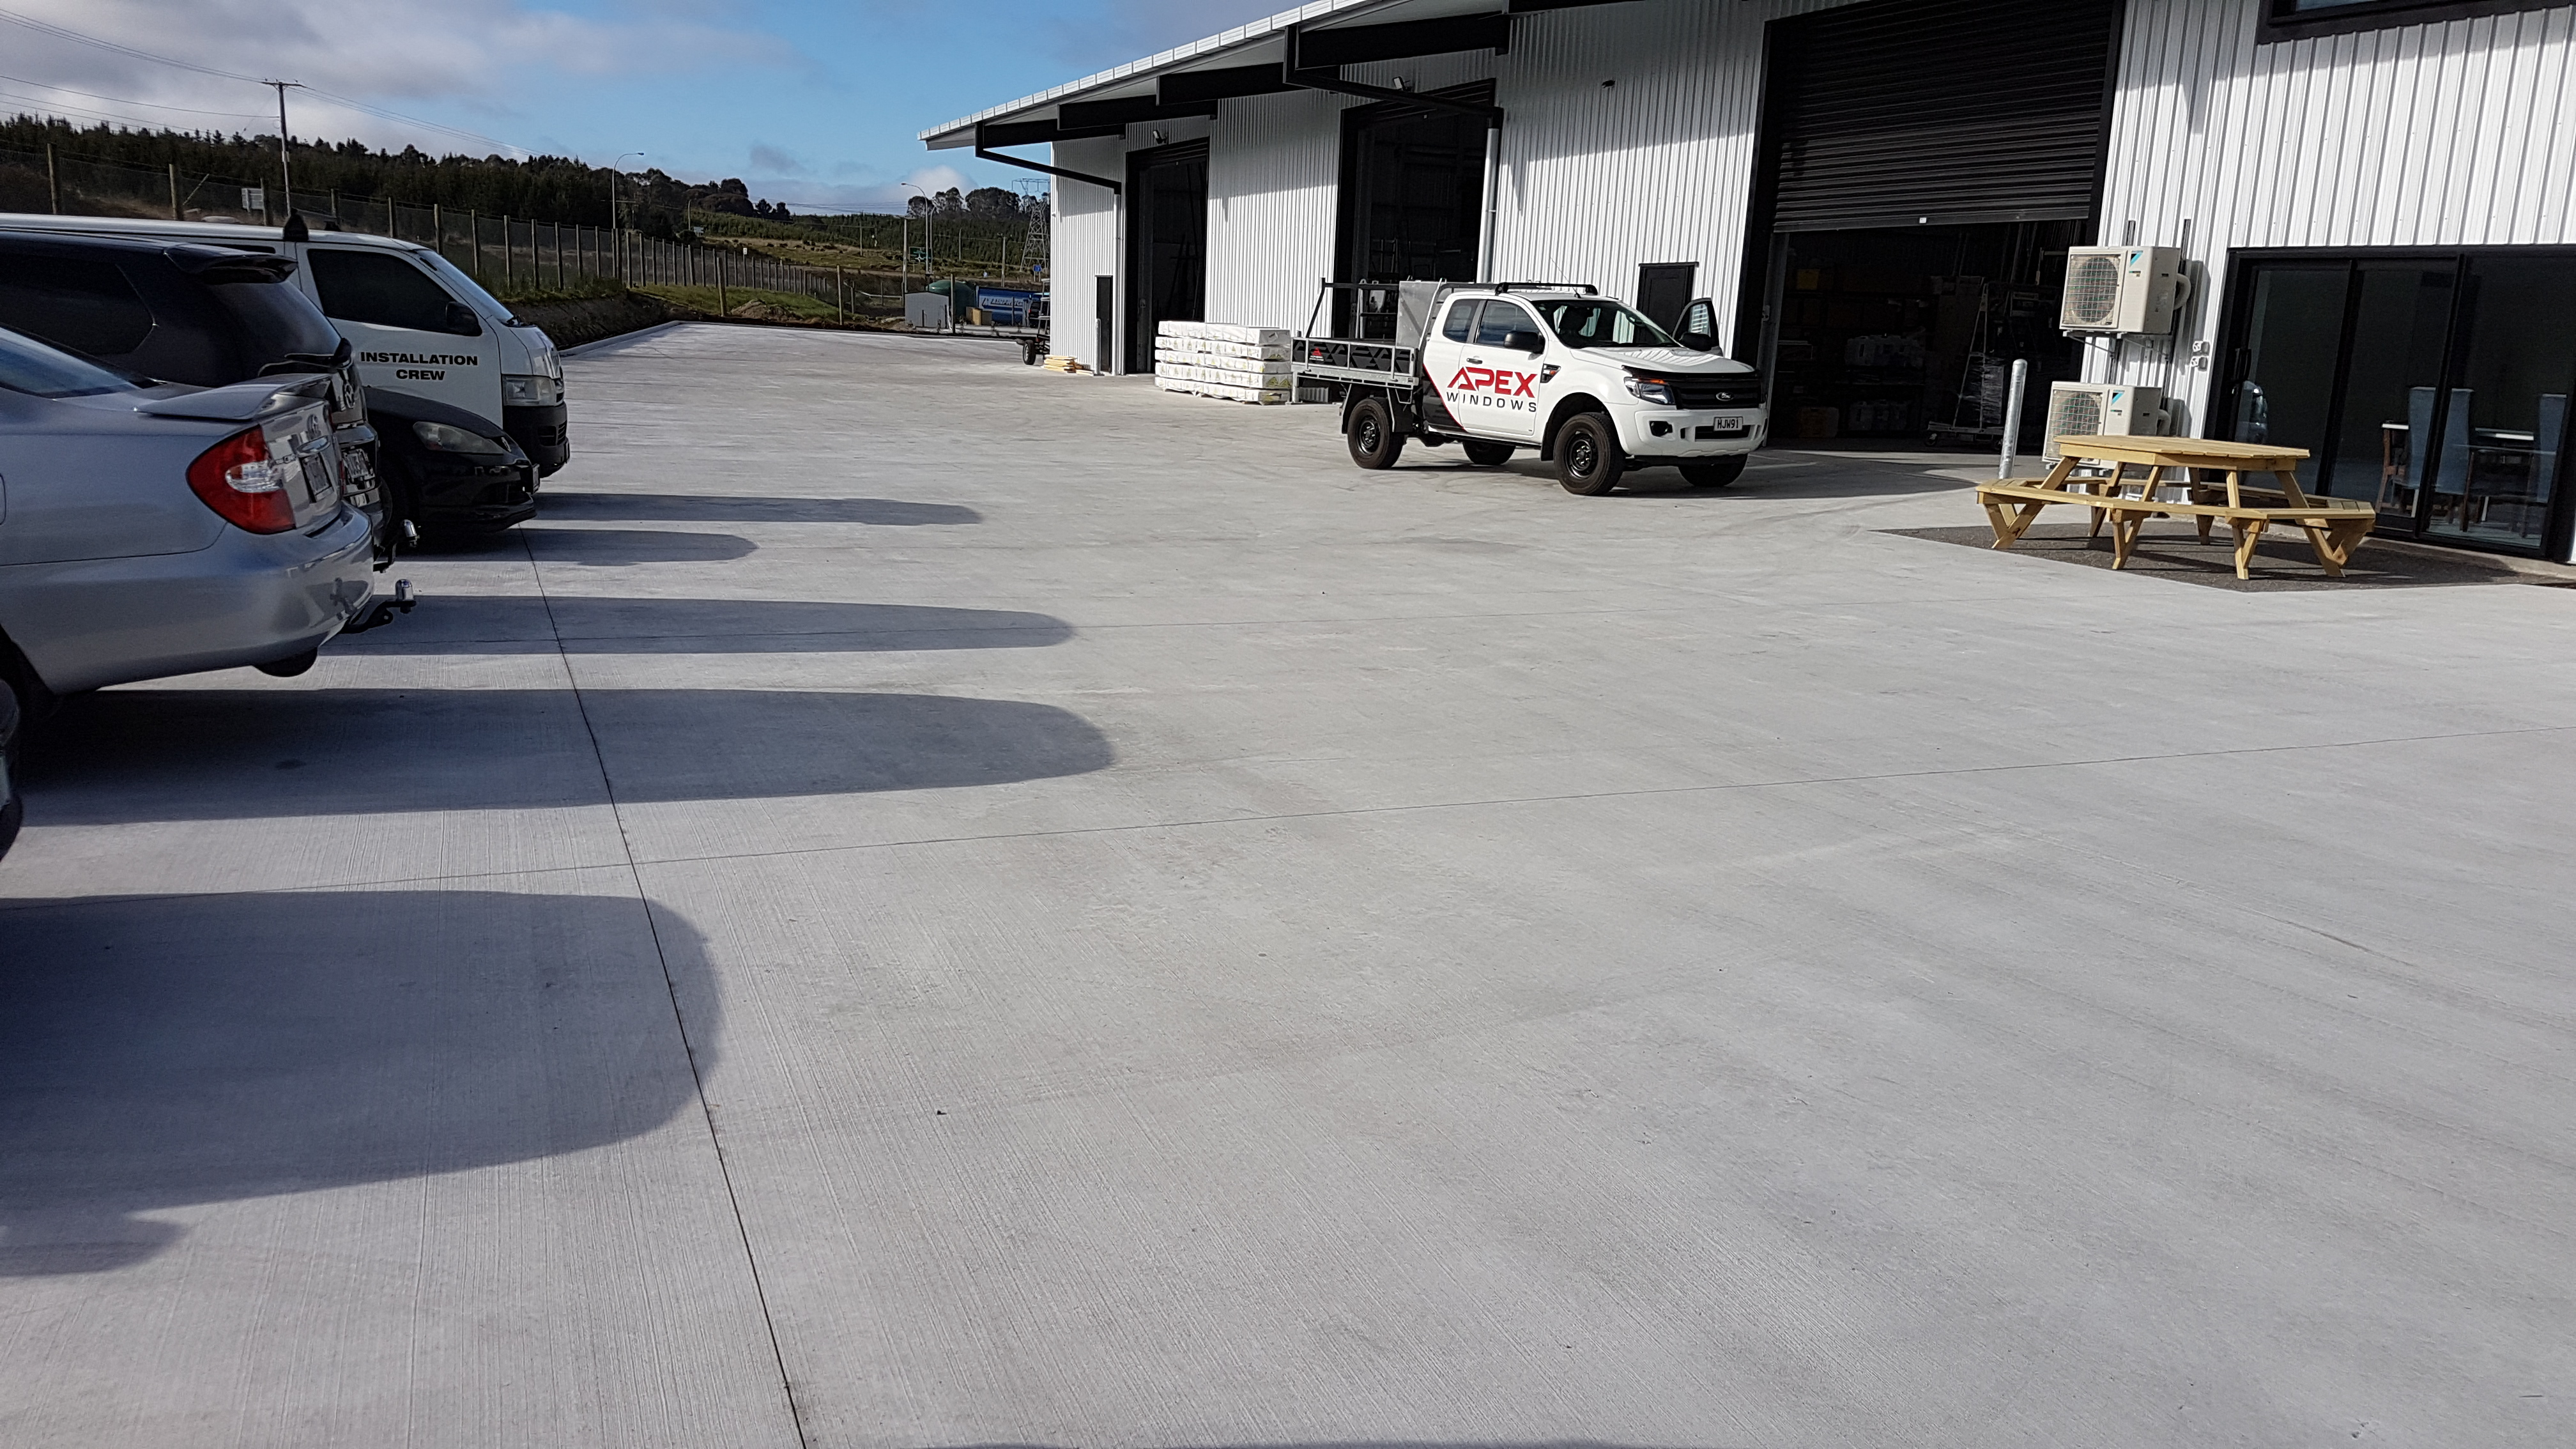 This business makes use of a large concrete fibre loading bay and access bay for its commercial building